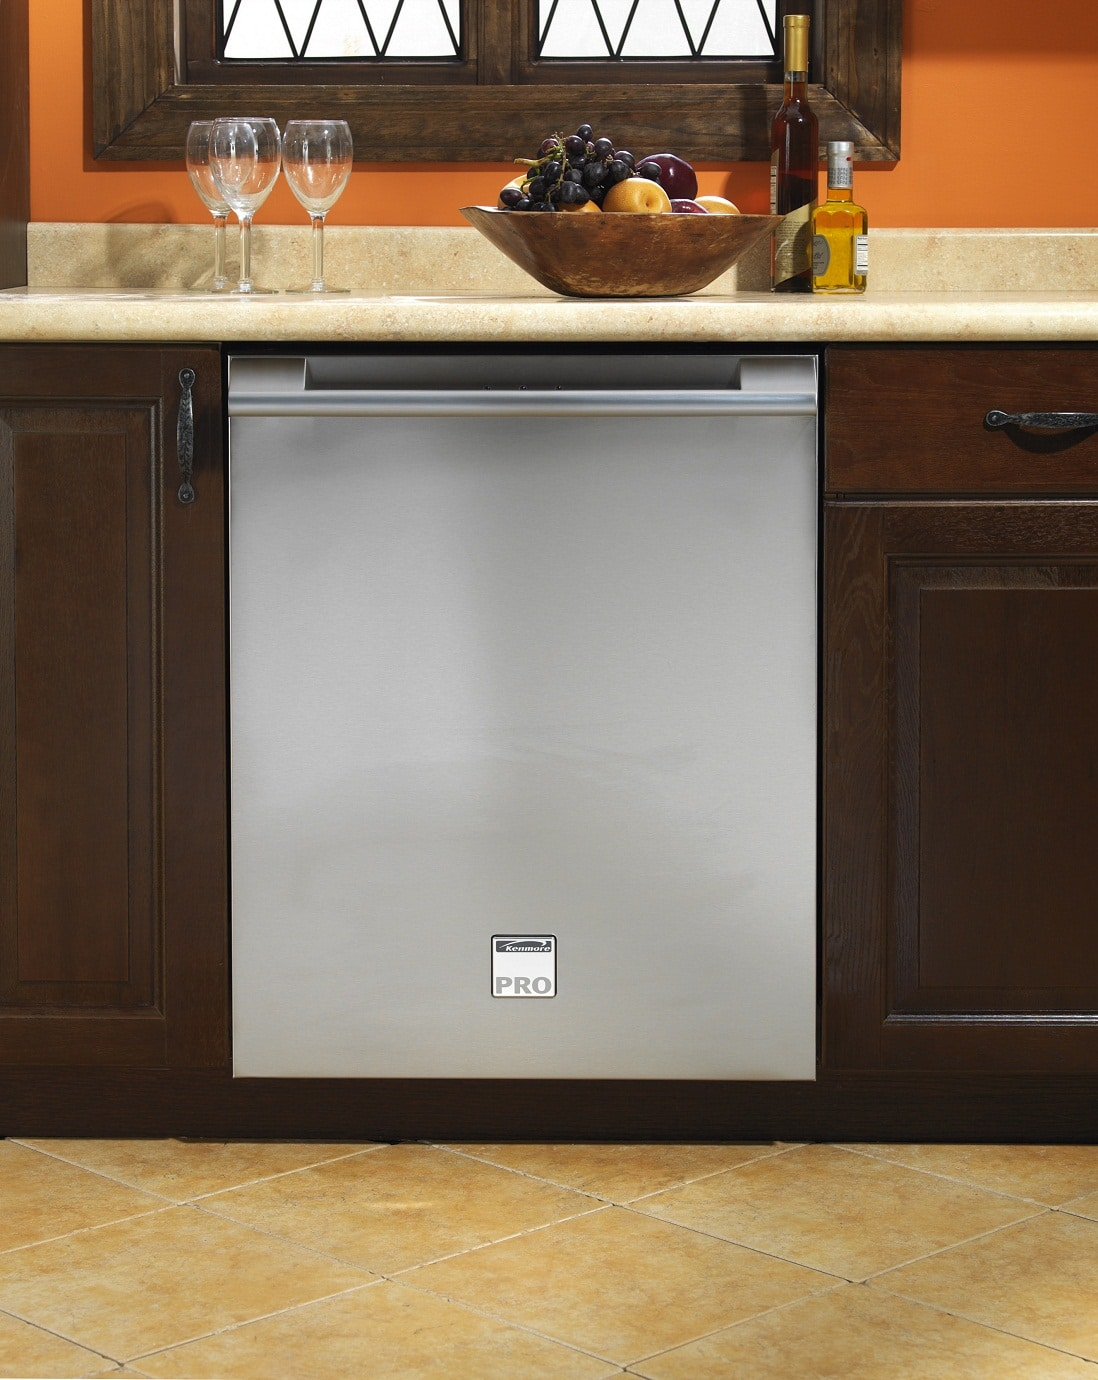 Best Stainless Steel Dishwasher